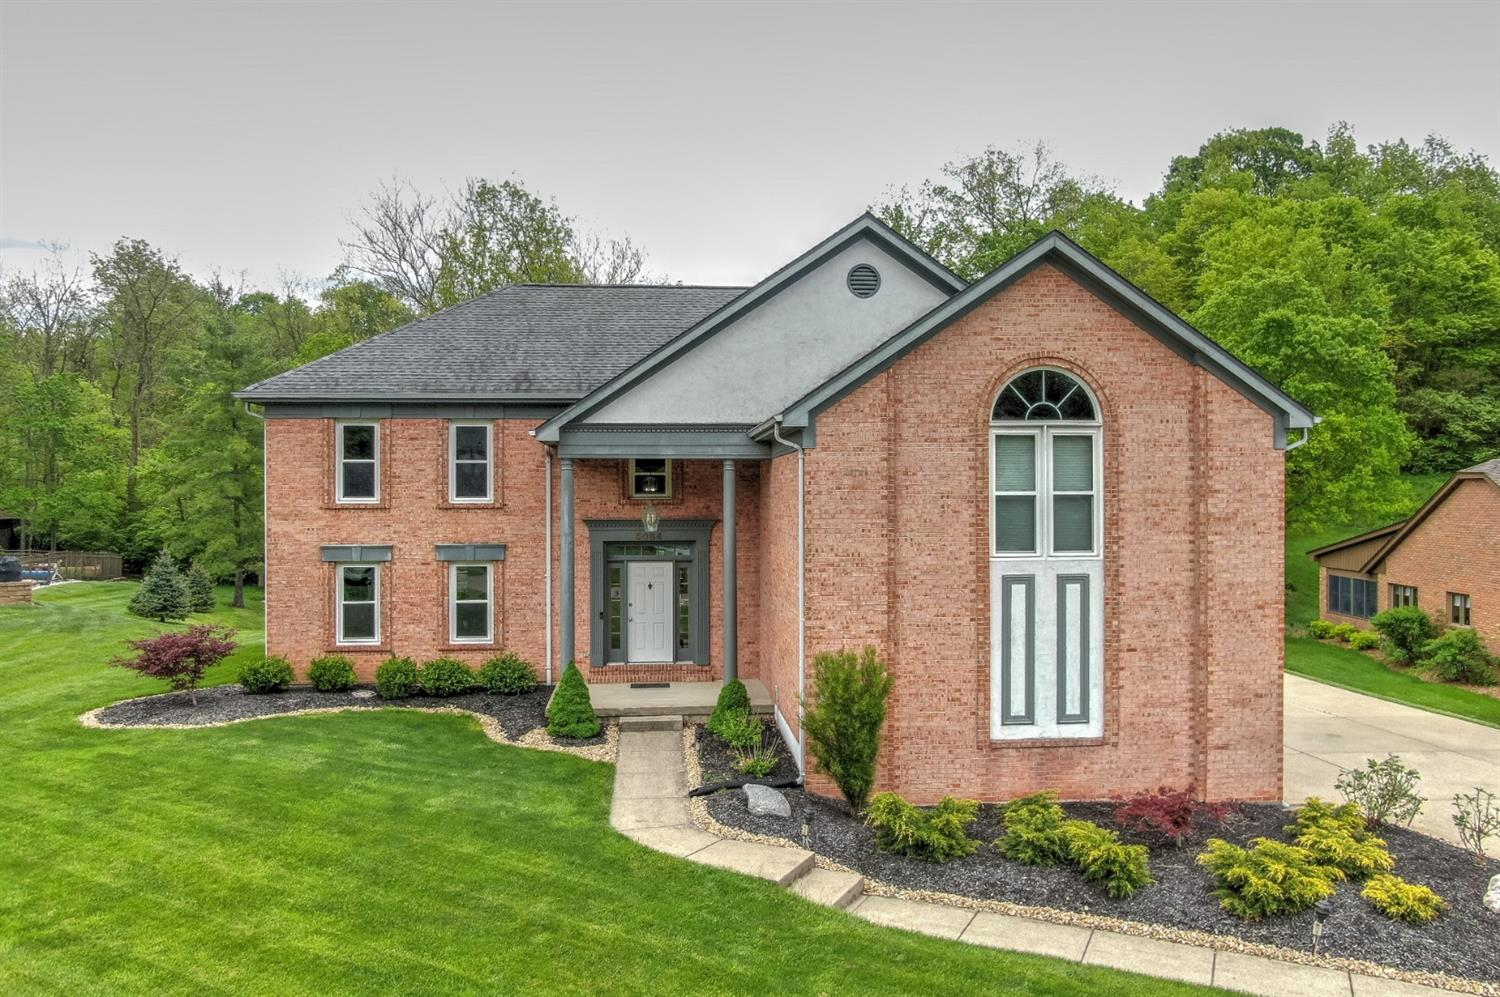 5084 Pebblevalley Drive Colerain Twp.West, OH